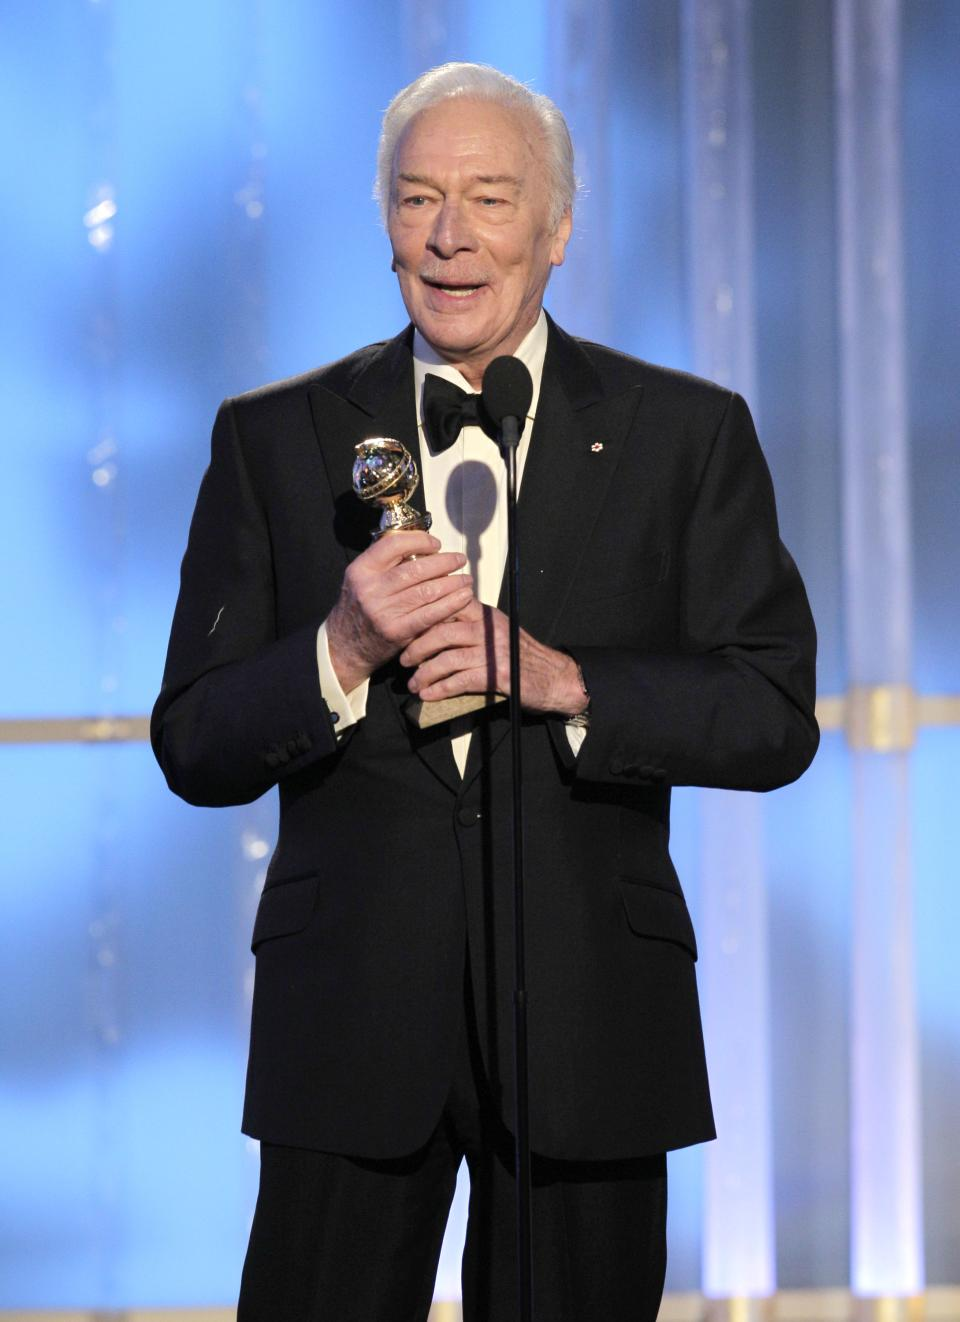 "In this image released by NBC, Christopher Plummer accepts award for Best Supporting Actor for a  Motion Picture for his role in ""Beginners"" during the 69th Annual Golden Globe Awards, Sunday, Jan. 15, 2012 in Los Angeles. (AP Photo/NBC, Paul Drinkwater)"